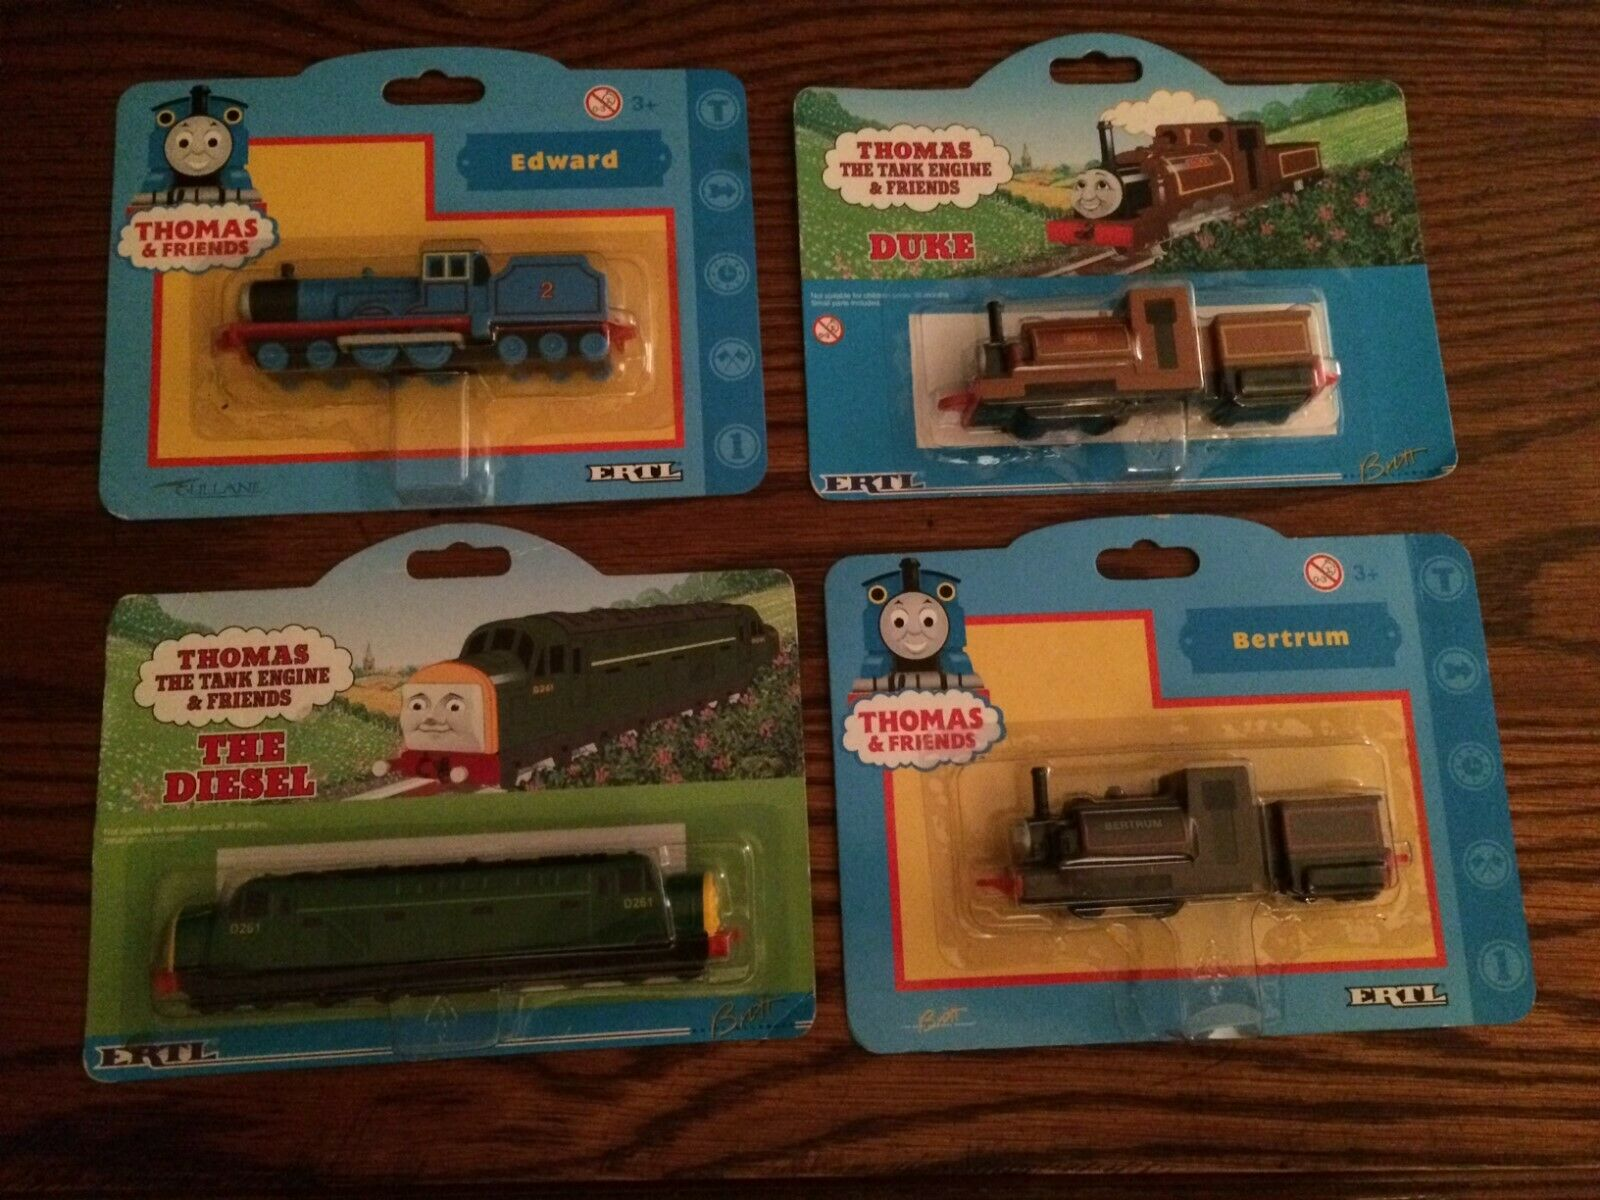 ERTL Lot of 4 Trains for the Early ERTL Die-Cast Trains New  See Description